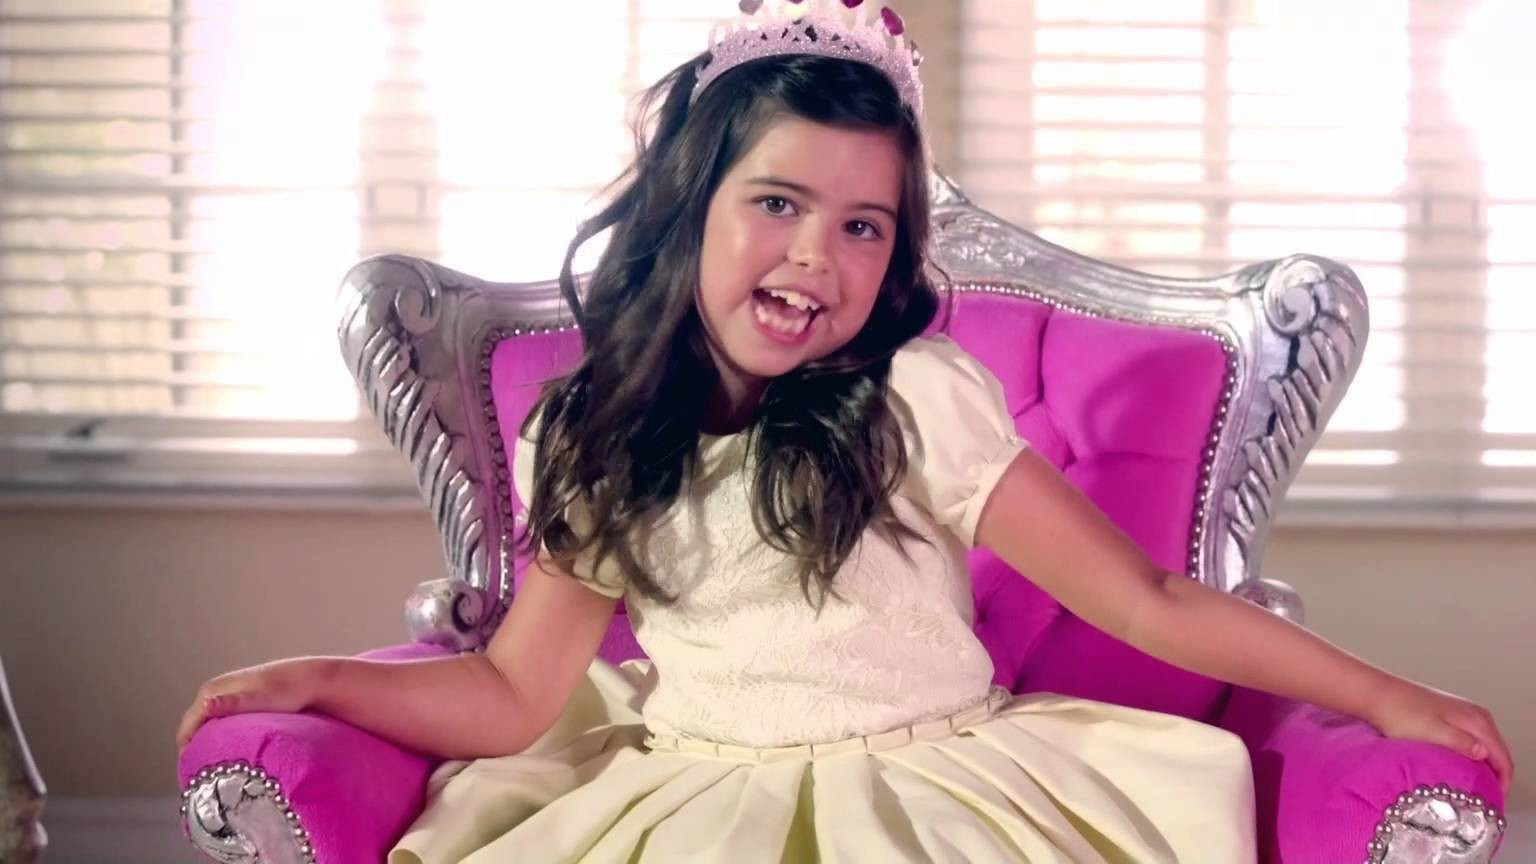 sophia grace and wayne j are the radically different tweens of the music scene